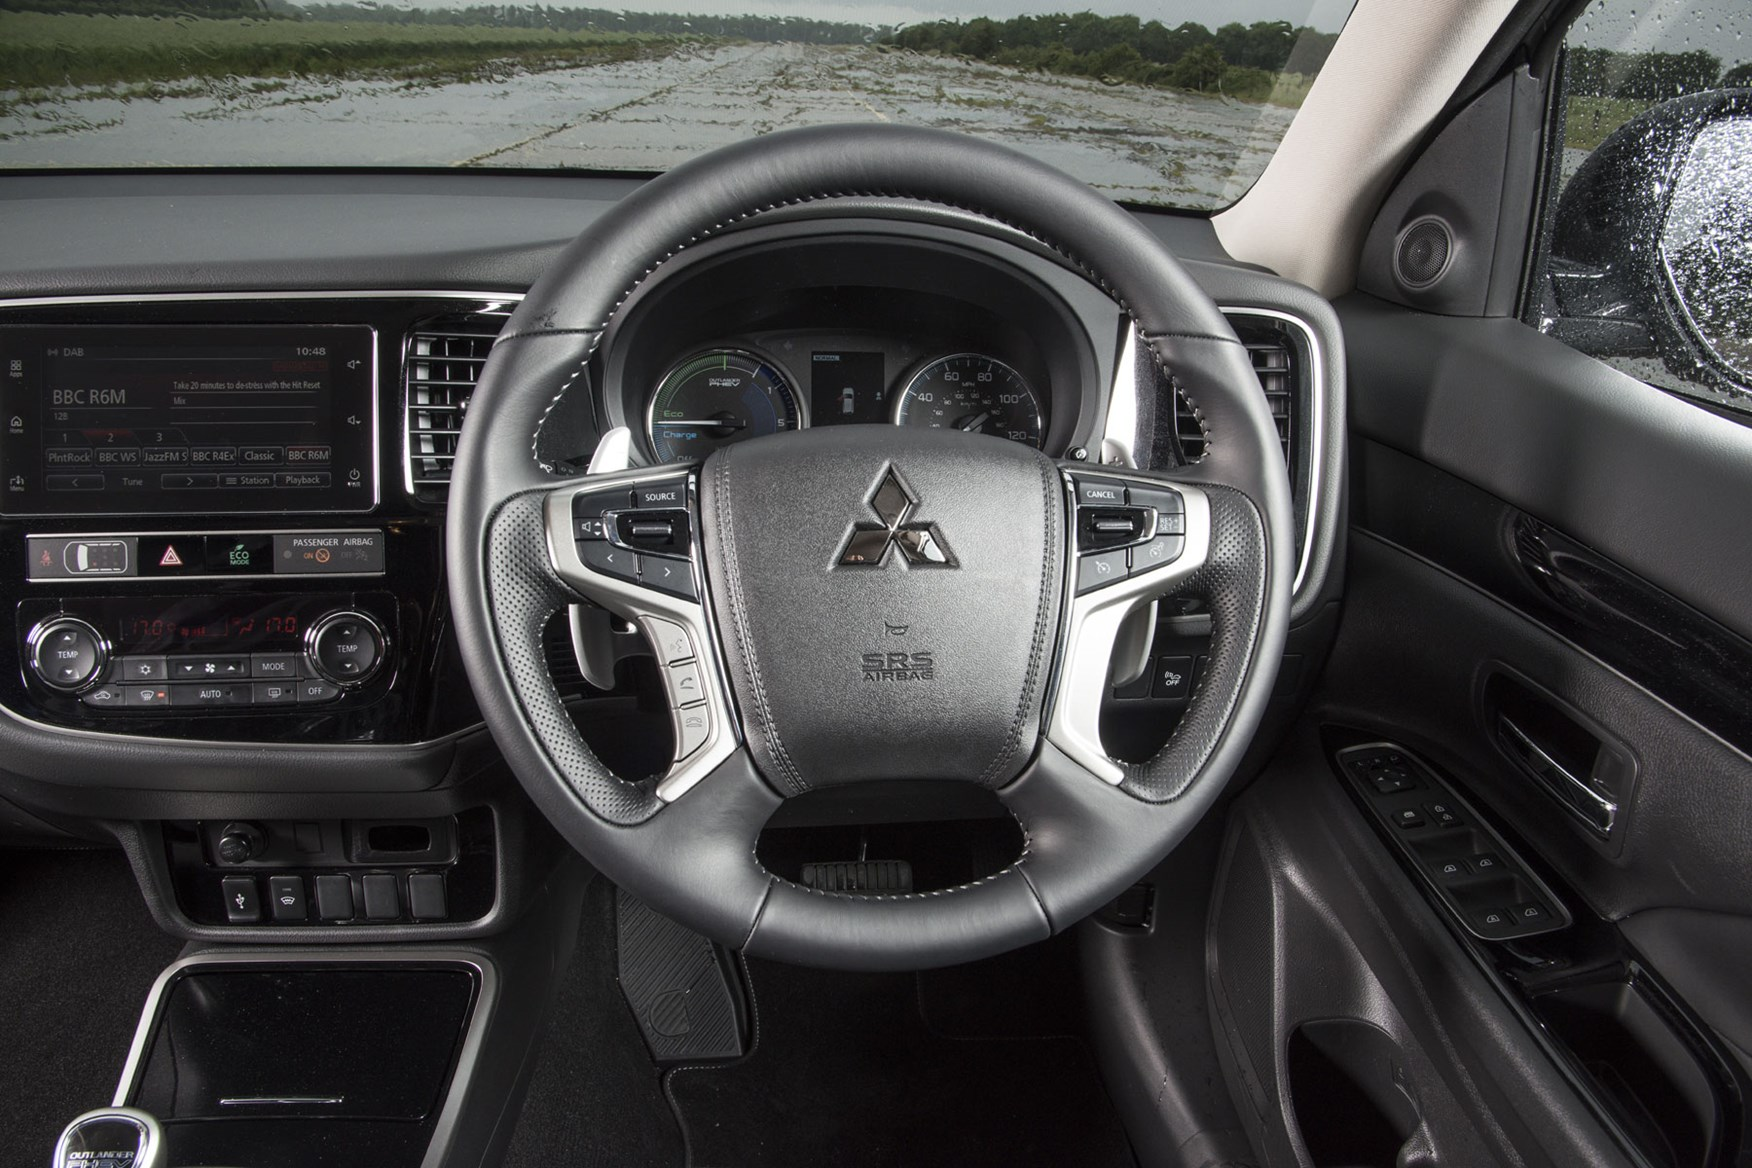 Mitsubishi Outlander Commercial 4x4 van review - steering wheel and instruments